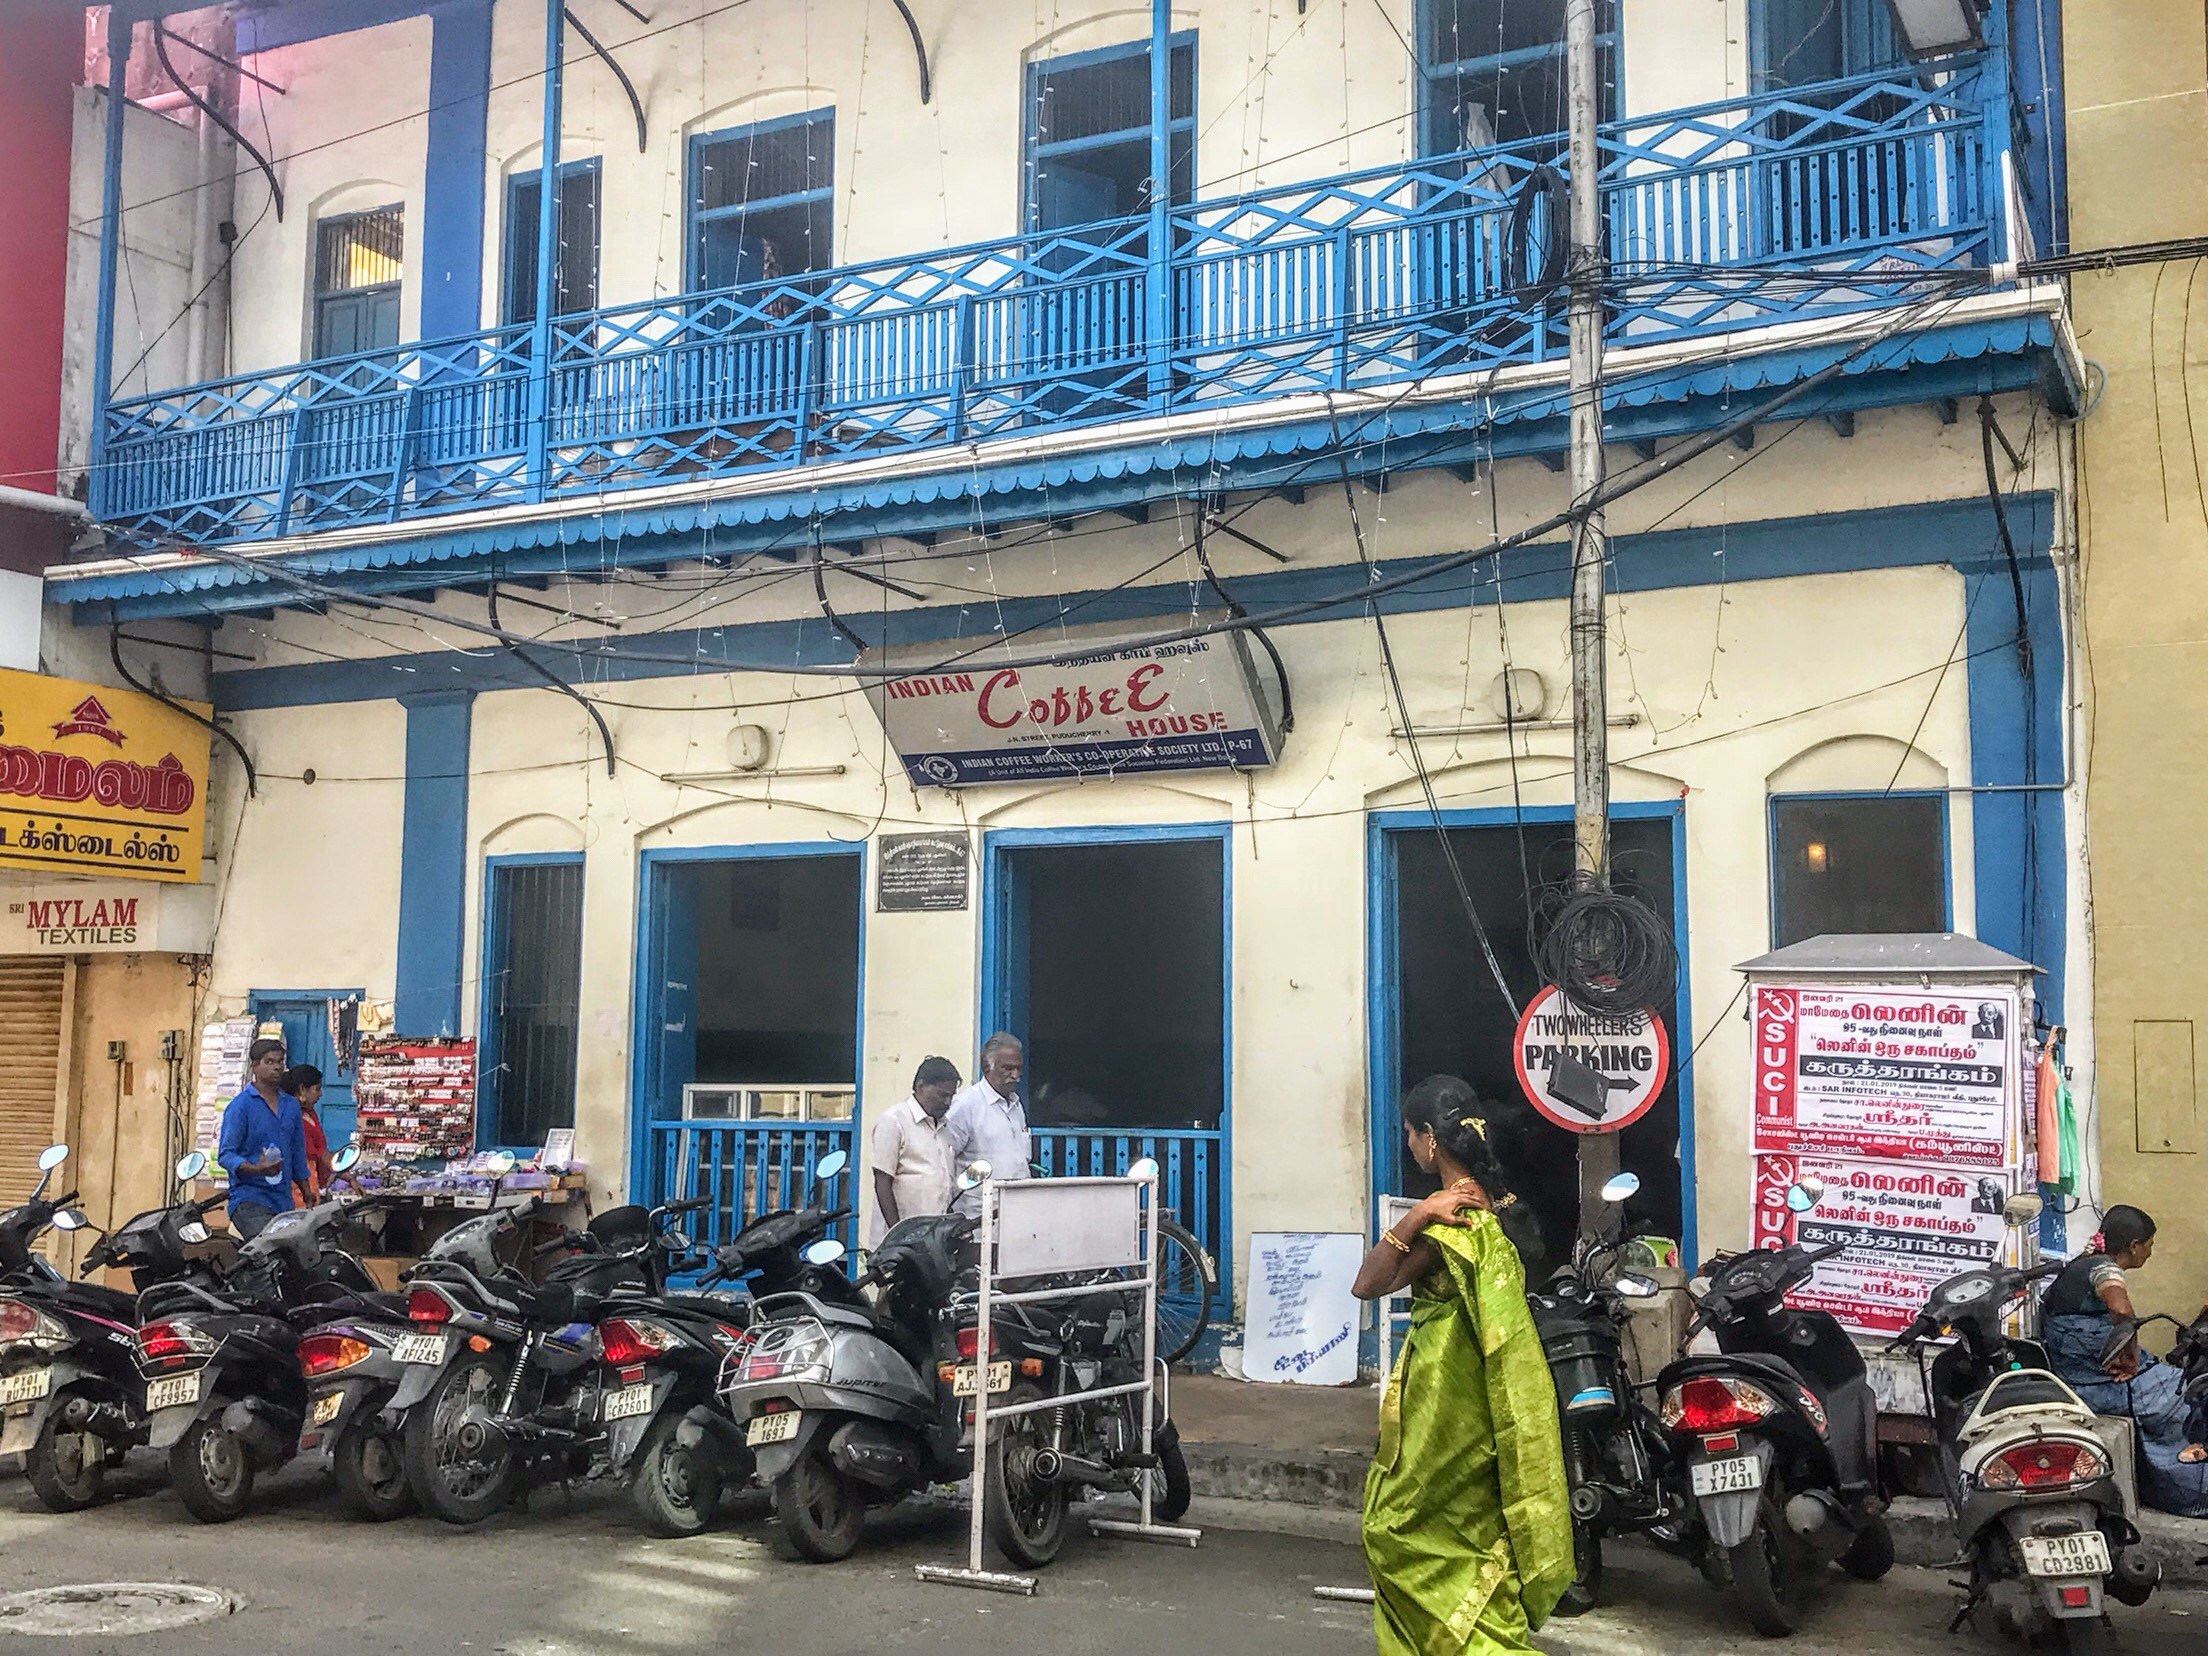 Indian Coffee House from Life of Pi, Pondicherry